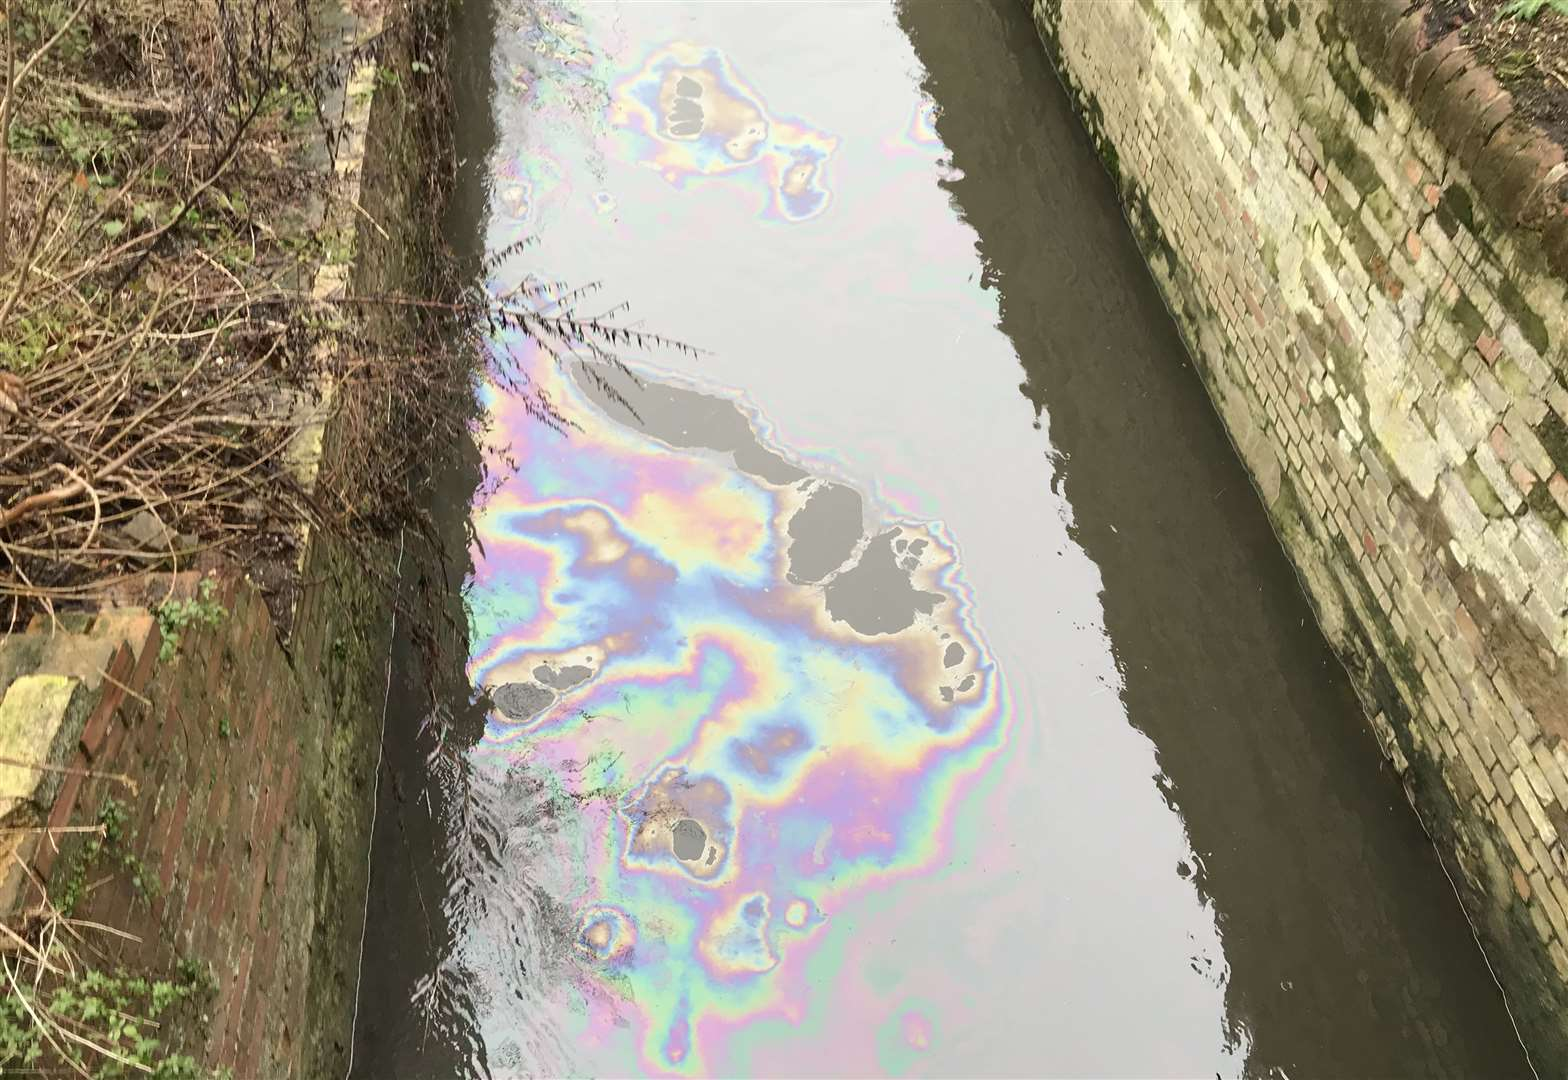 Environment Agency and Anglian Water investigate pollution incident in River Lark